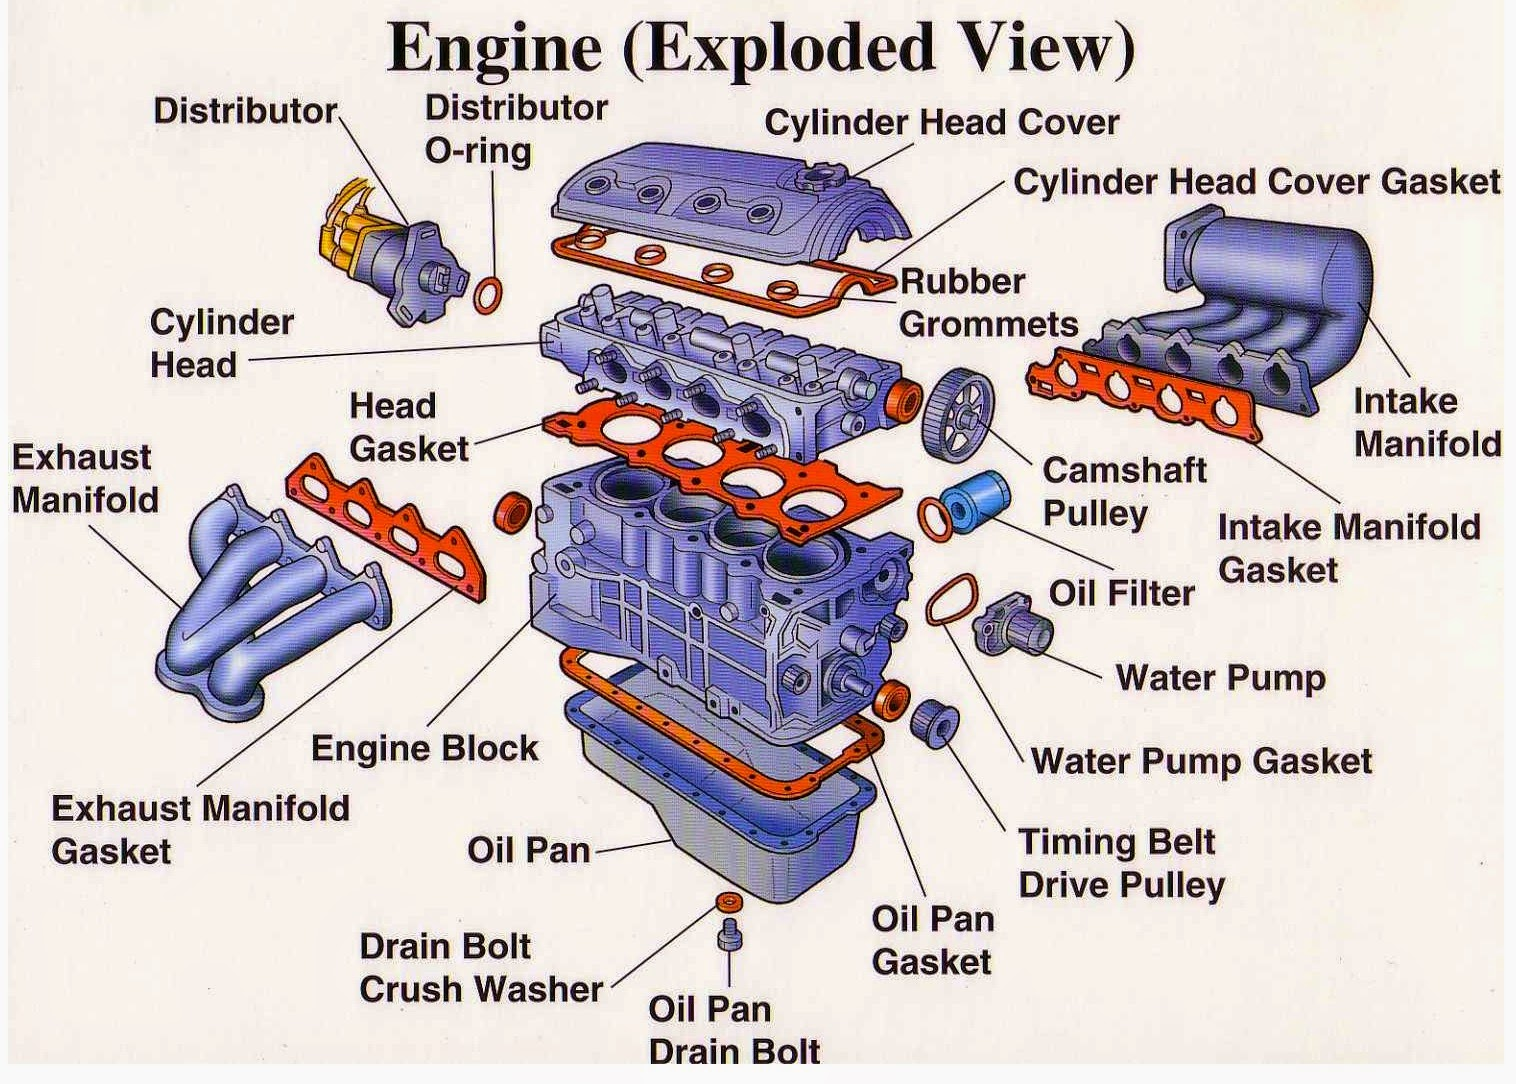 Engine Parts Exploded View Electrical Engineering Blog